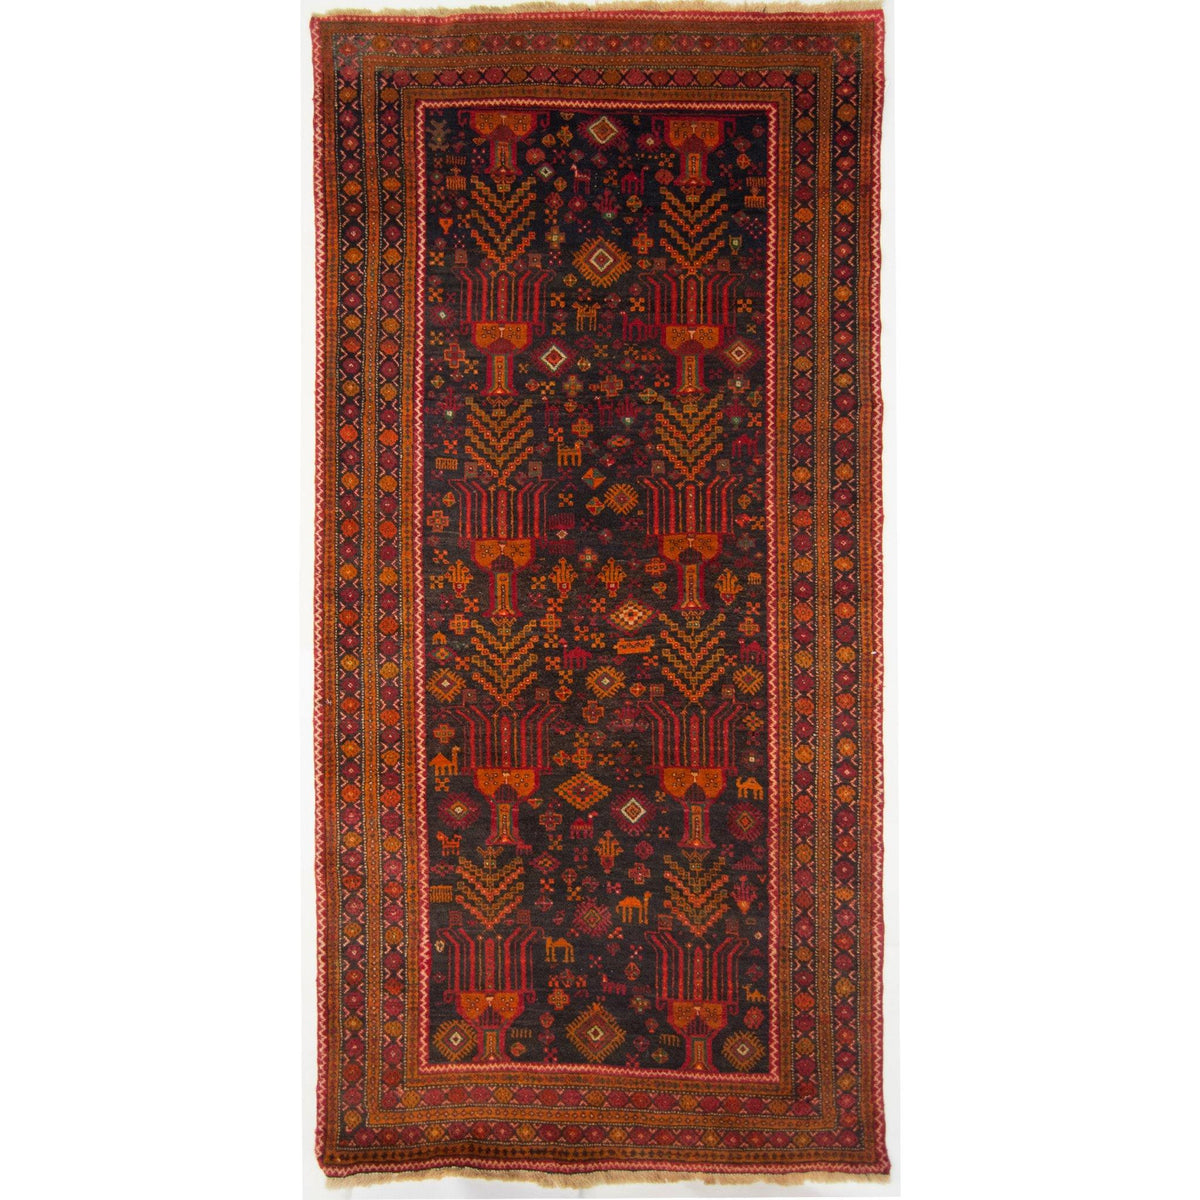 Vintage Tribal Persian Baluchi Runner 110cm x 235cm Persian-Rug | House-of-Haghi | NewMarket | Auckland | NZ | Handmade Persian Rugs | Hand Knotted Persian Rugs